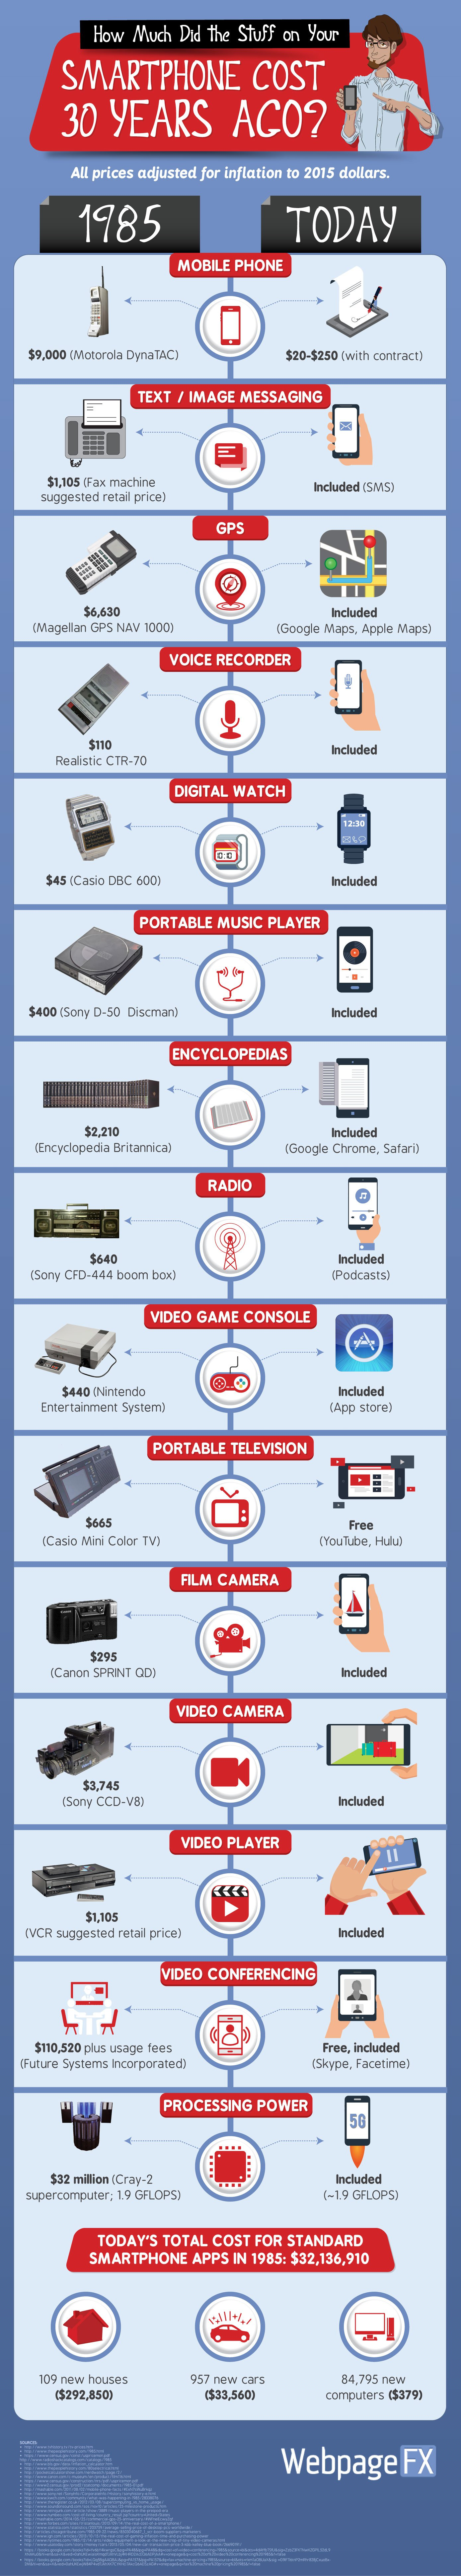 smartphone-cost-infographic-final